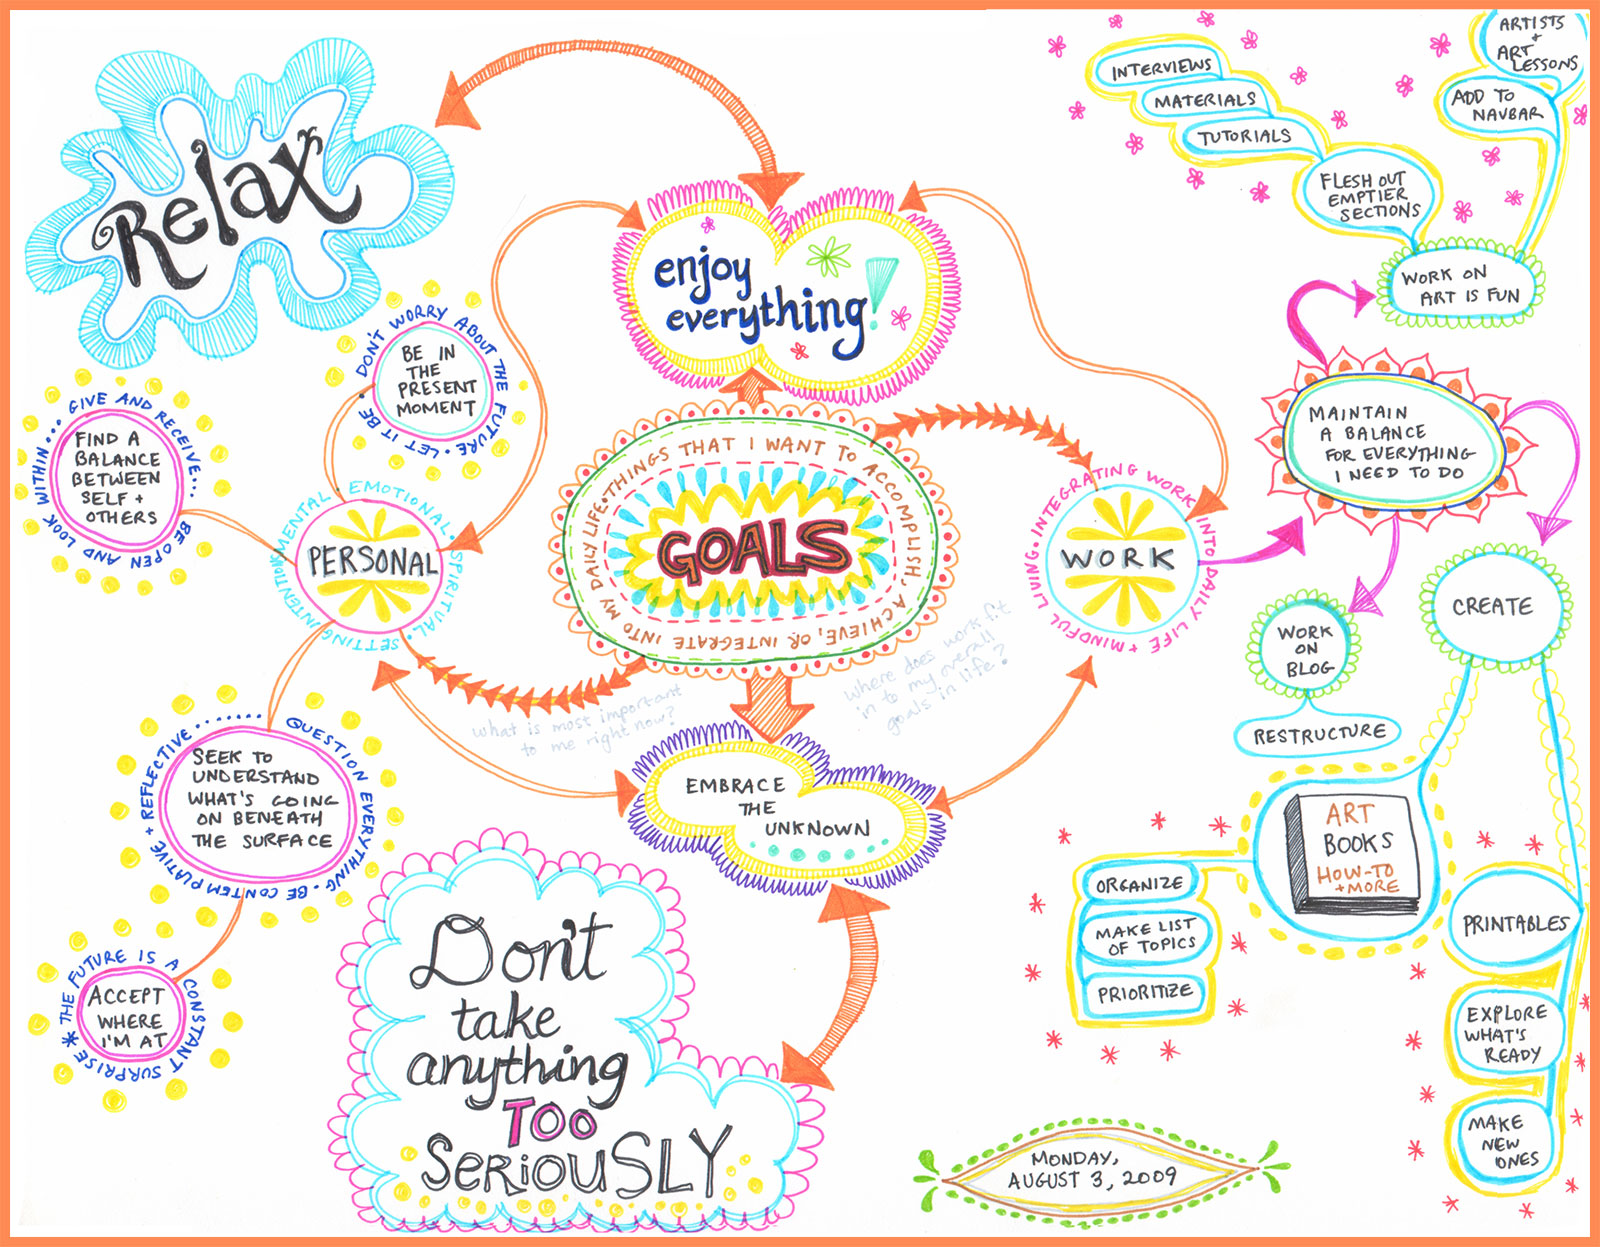 create a mind map learn how to mind map from this colorful mind click on the